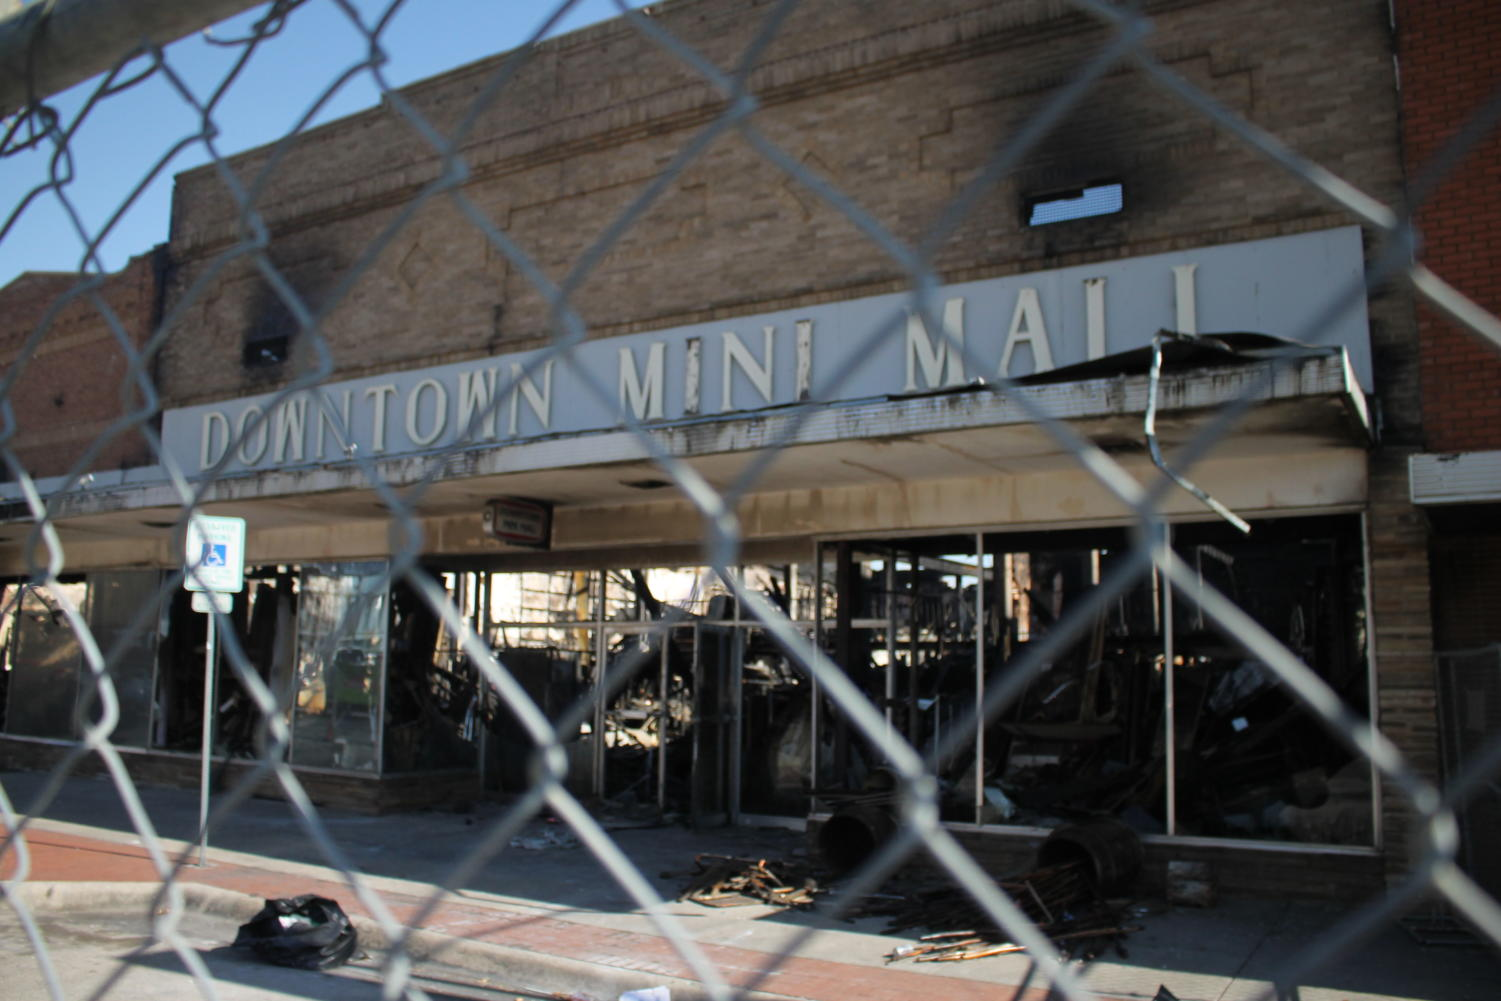 A view of the Mini Mall after the fire on Jan. 14 in Denton, Tx. (Hayden Calendine | The Talon News)